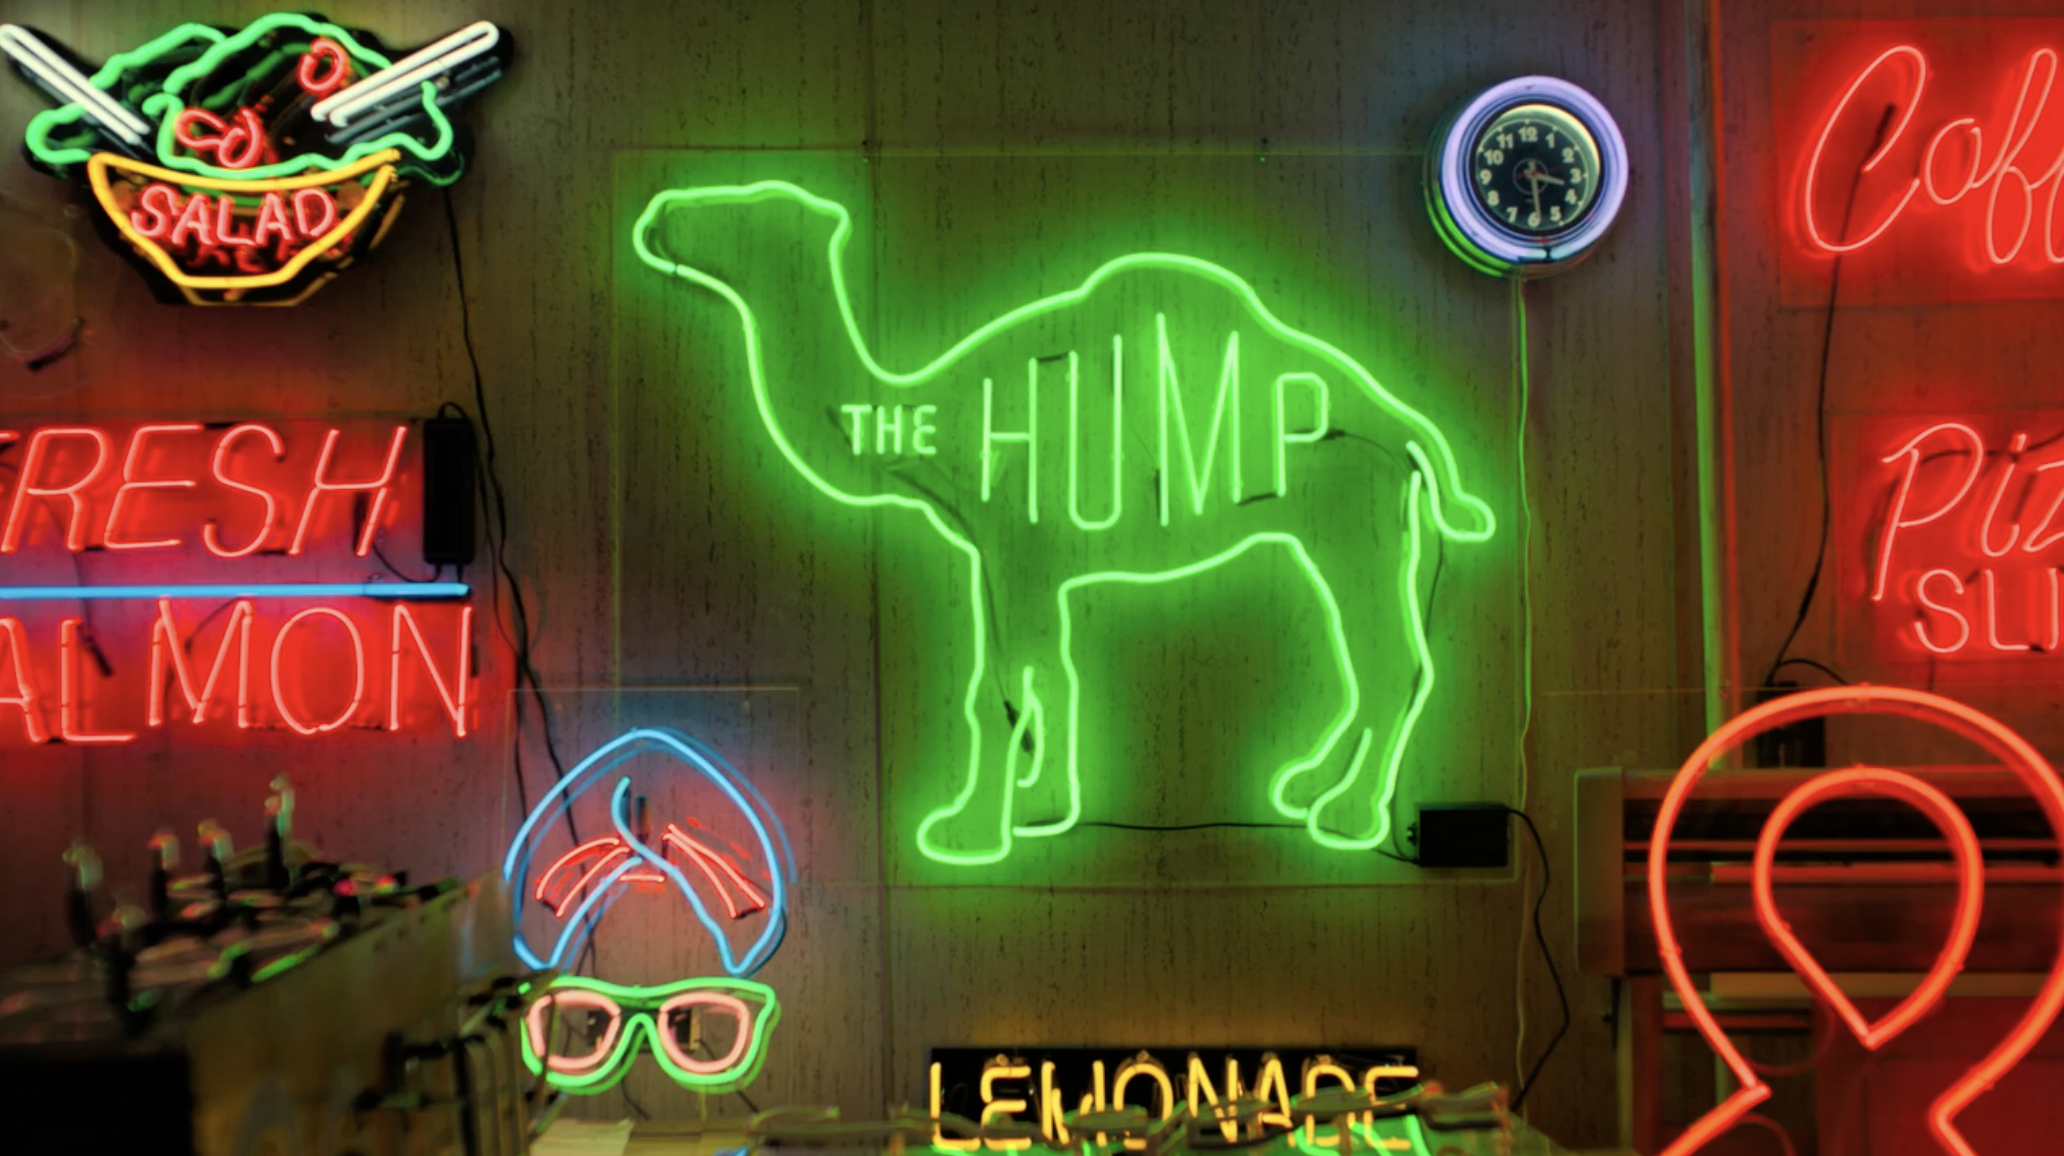 camel neon sign